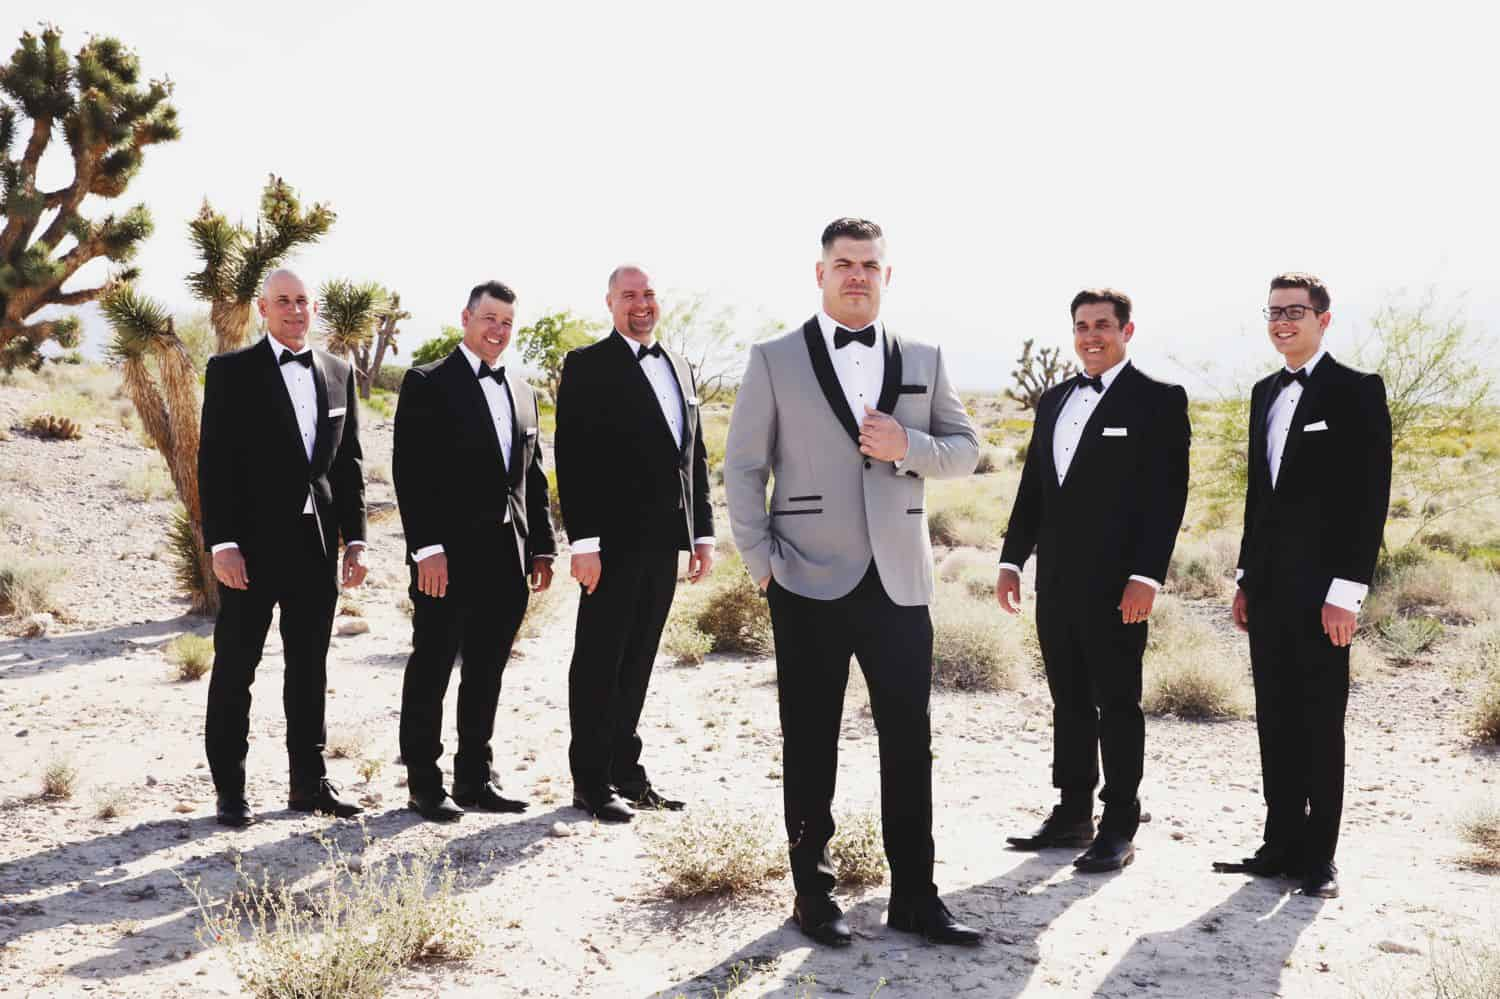 A groom in a grey tuxedo stands slightly in front of his groomsmen.